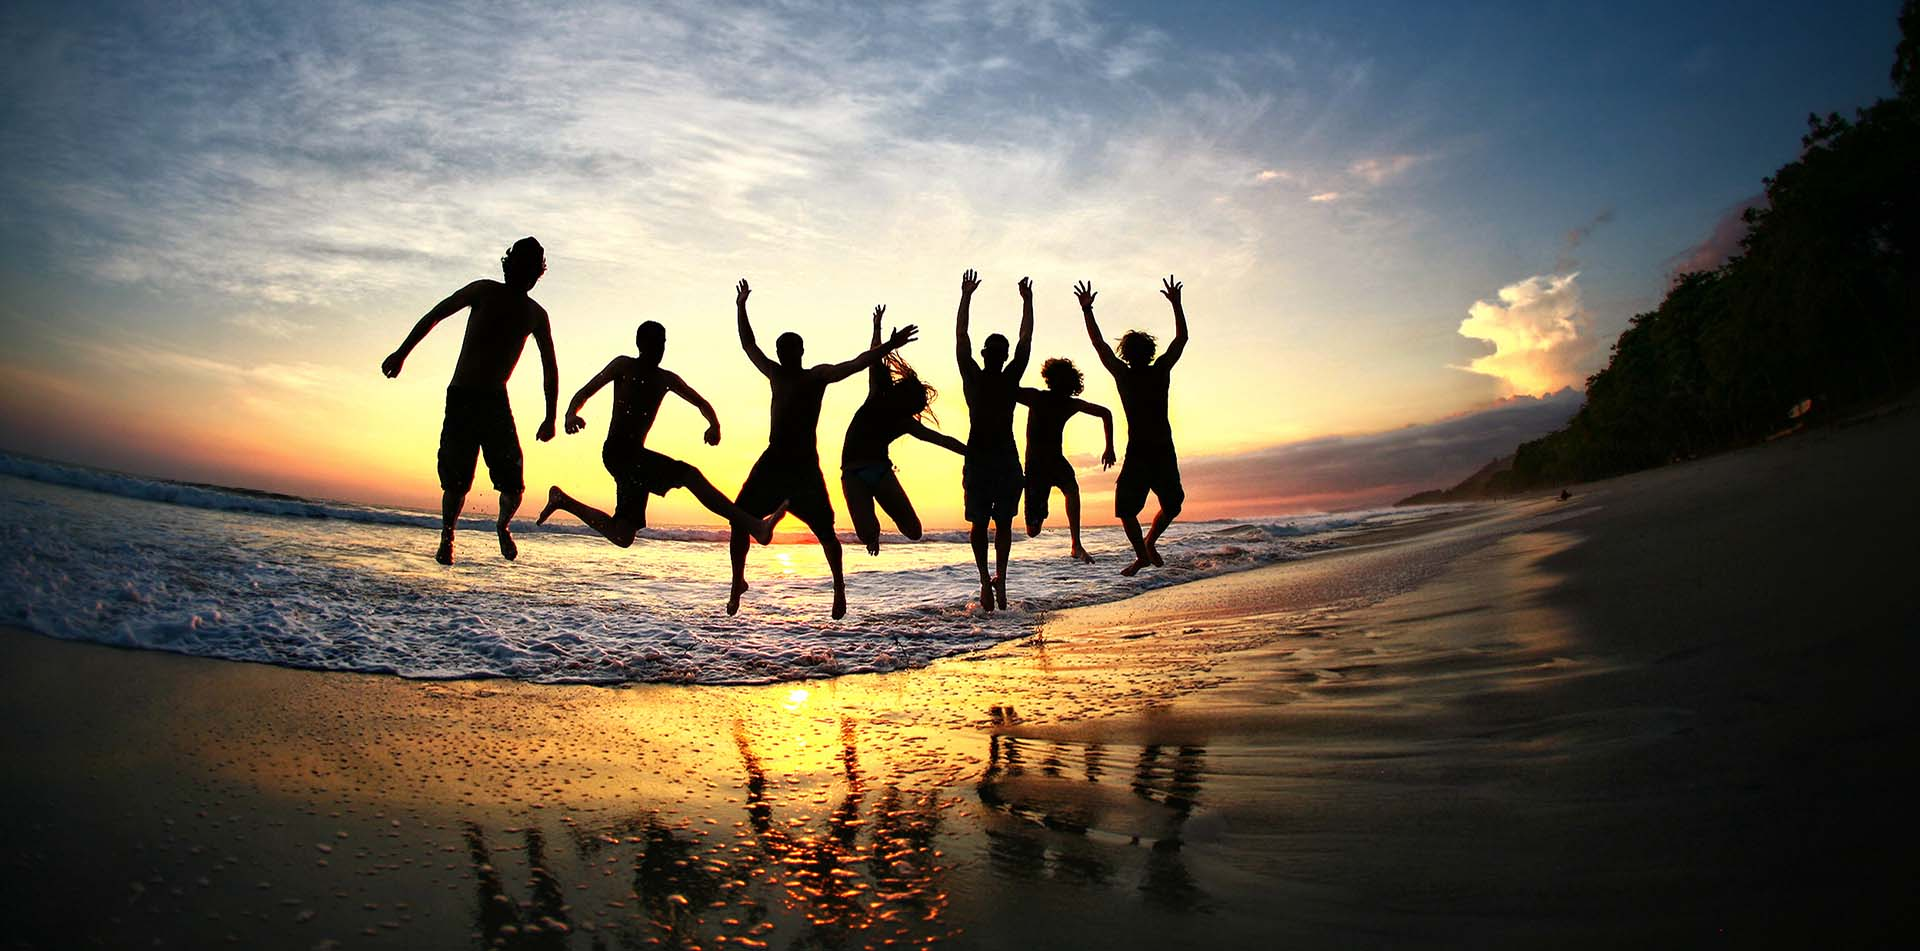 Friends Jumping on Beach at Sunset, Costa Rica